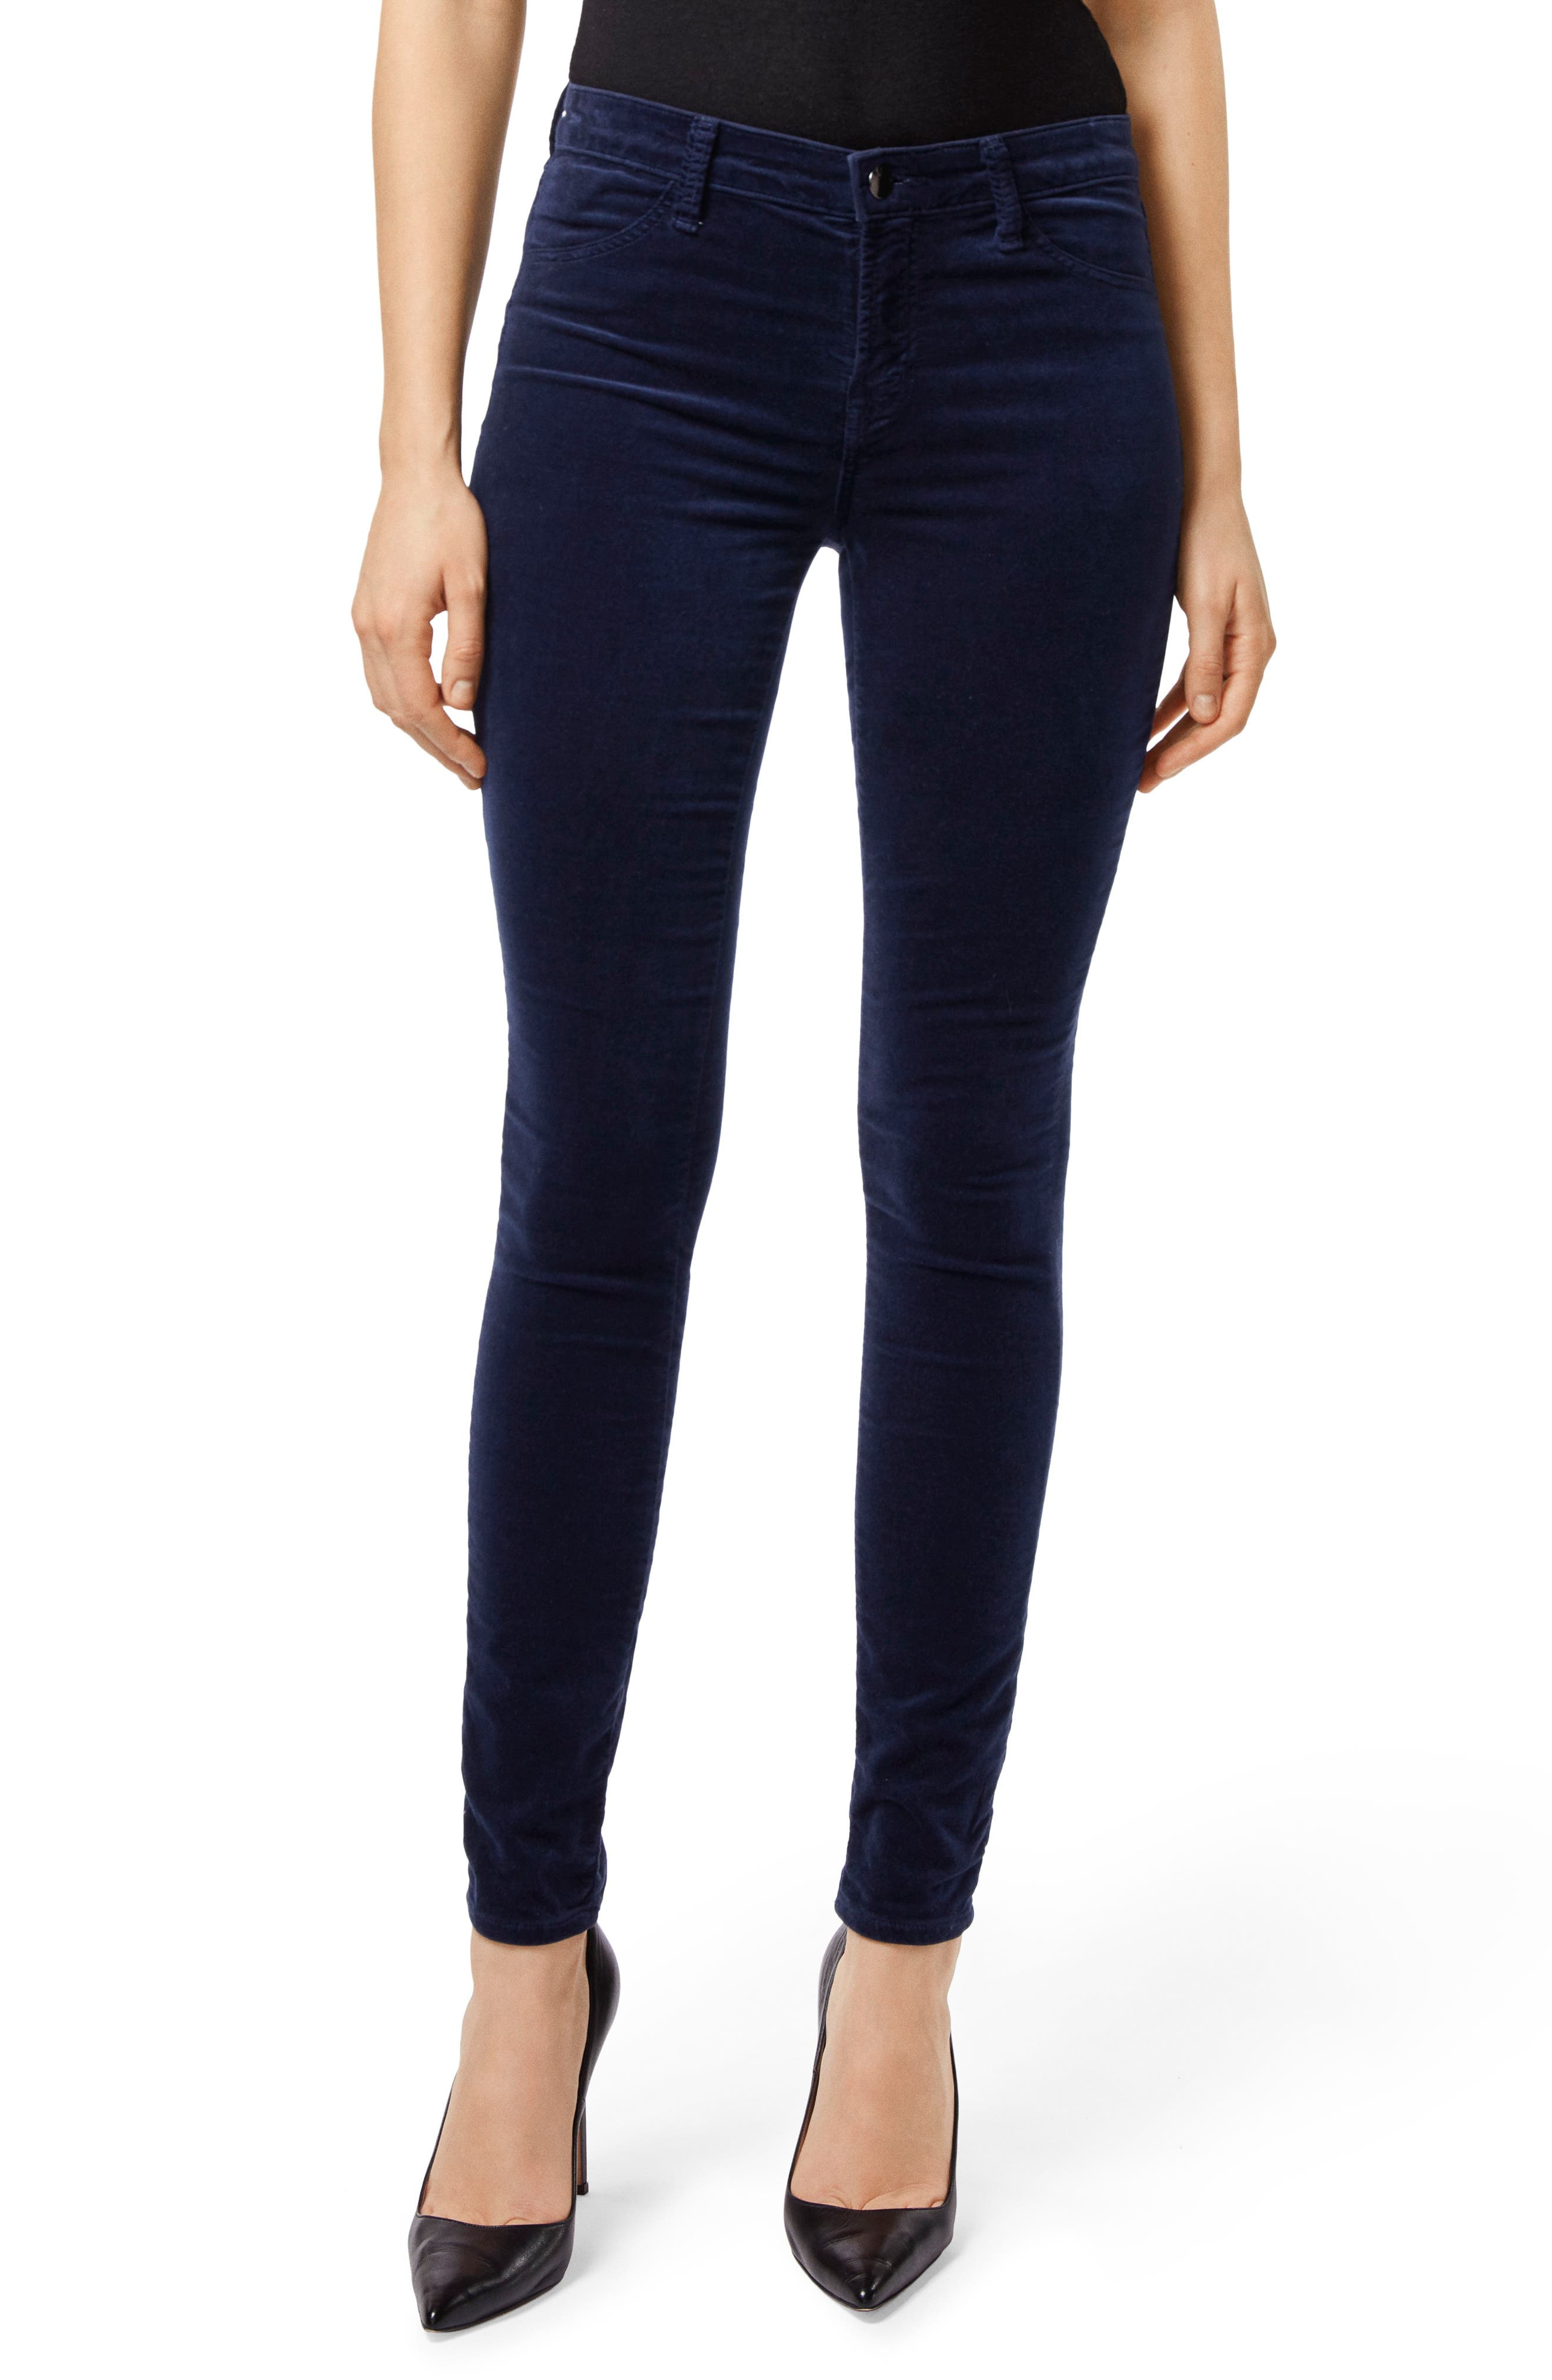 Maria High Waist Velvet Skinny Jeans,                         Main,                         color, NIGHT OUT